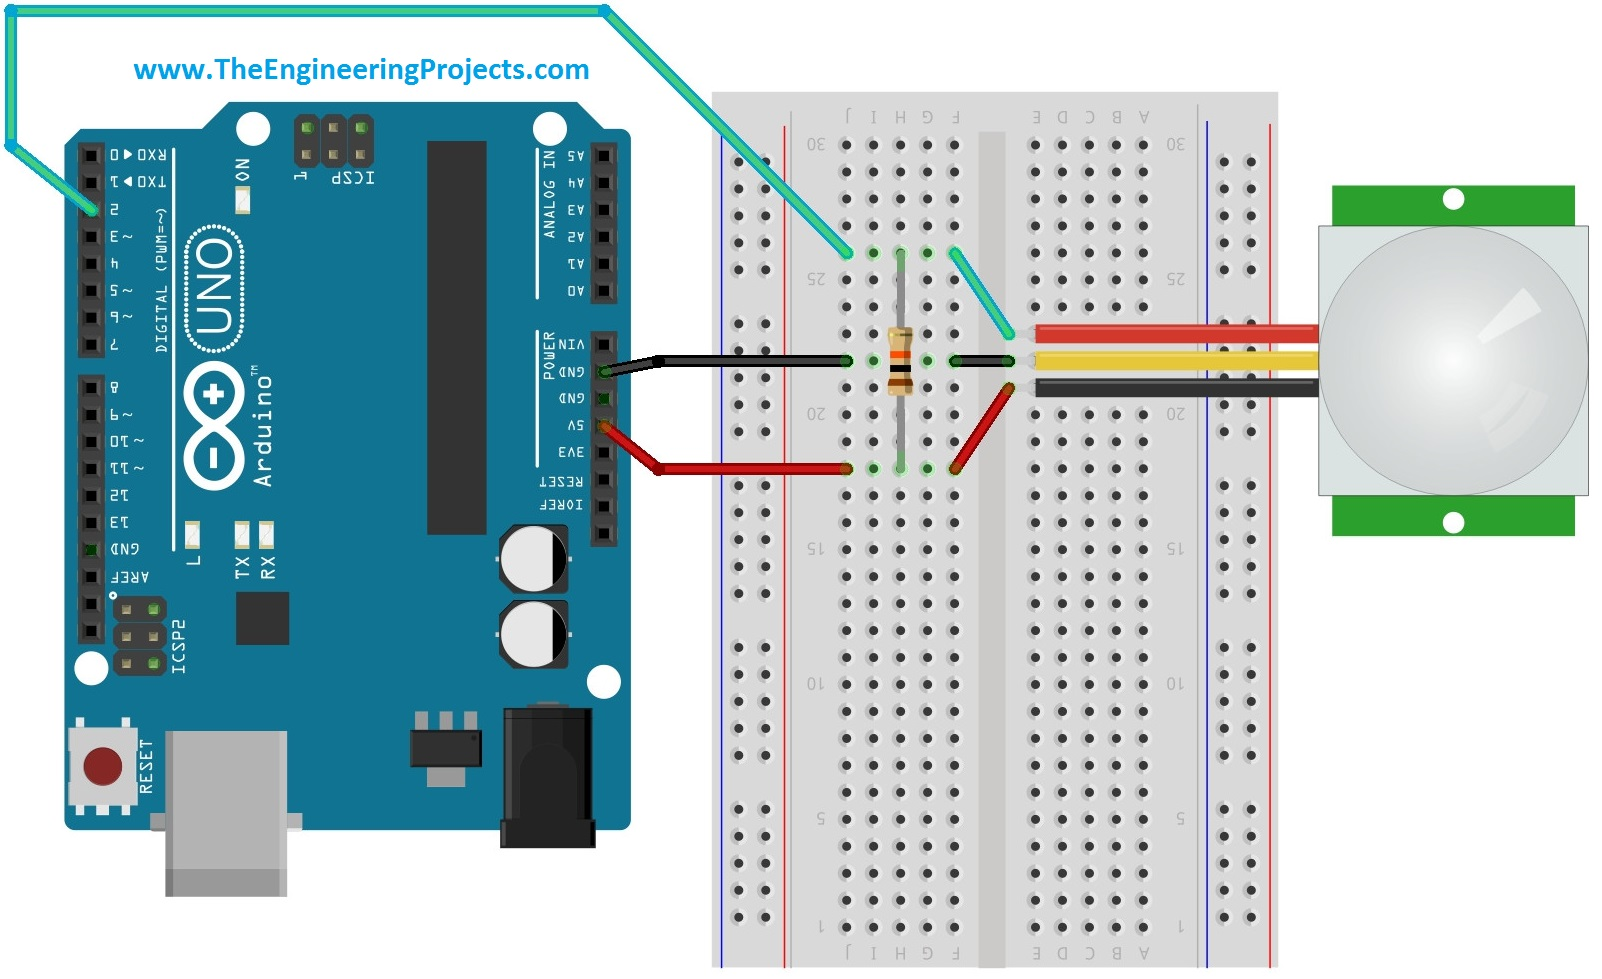 pir motion sensor wiring diagram how to read car symbols interfacing with arduino the engineering projects